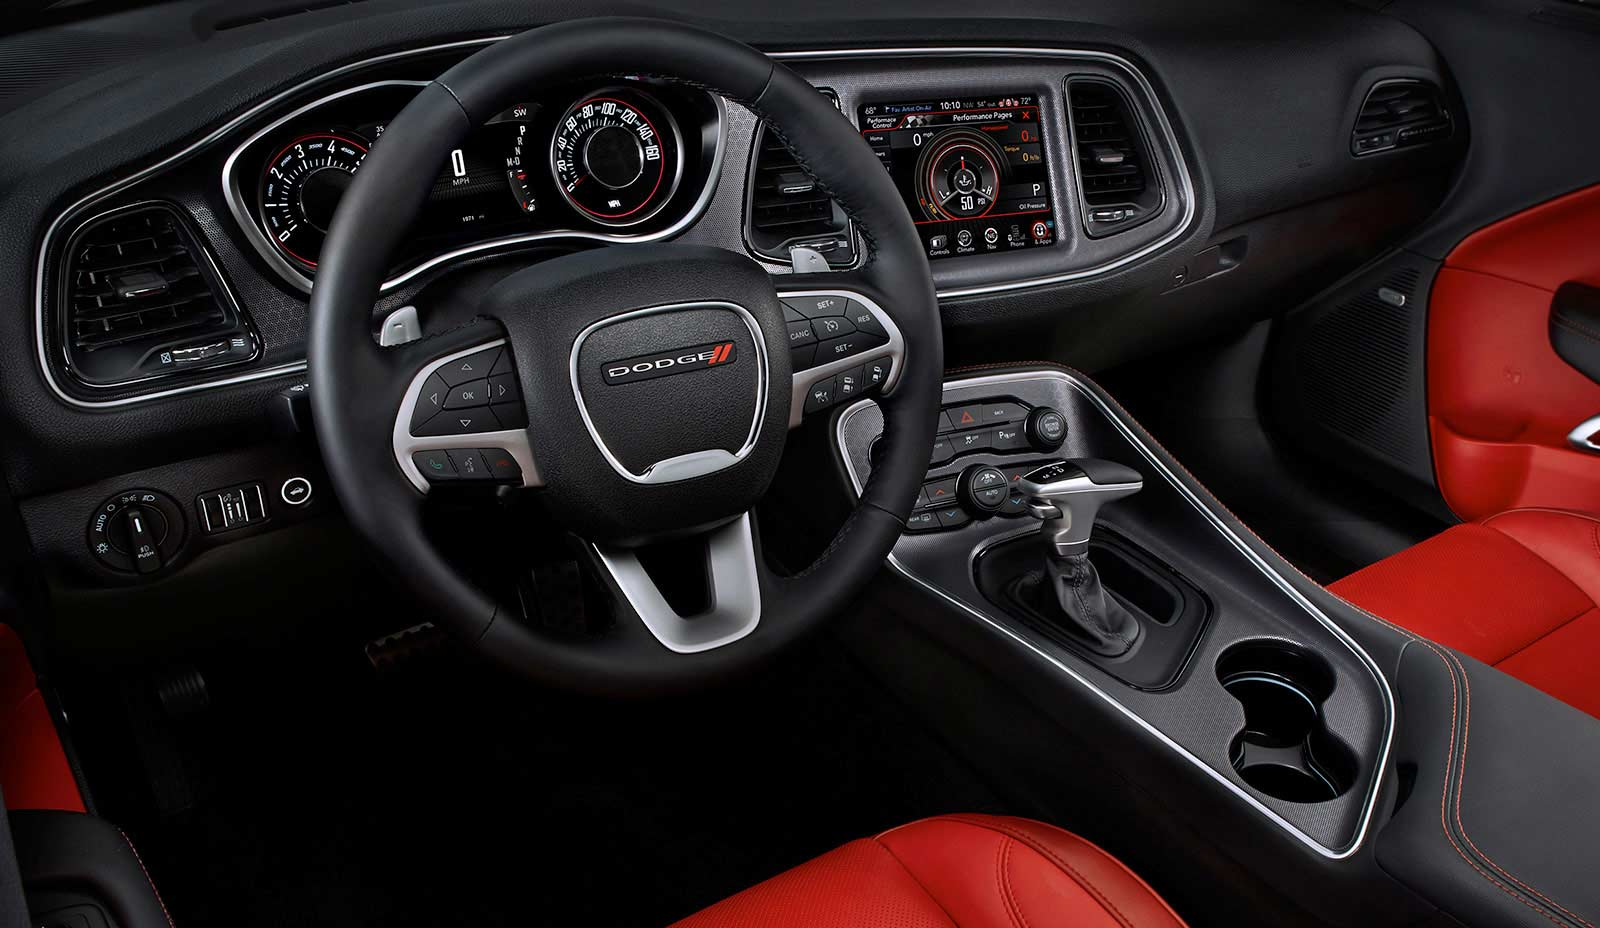 2015 Dodge Challenger Cockpit Steer (Photo 31 of 39)